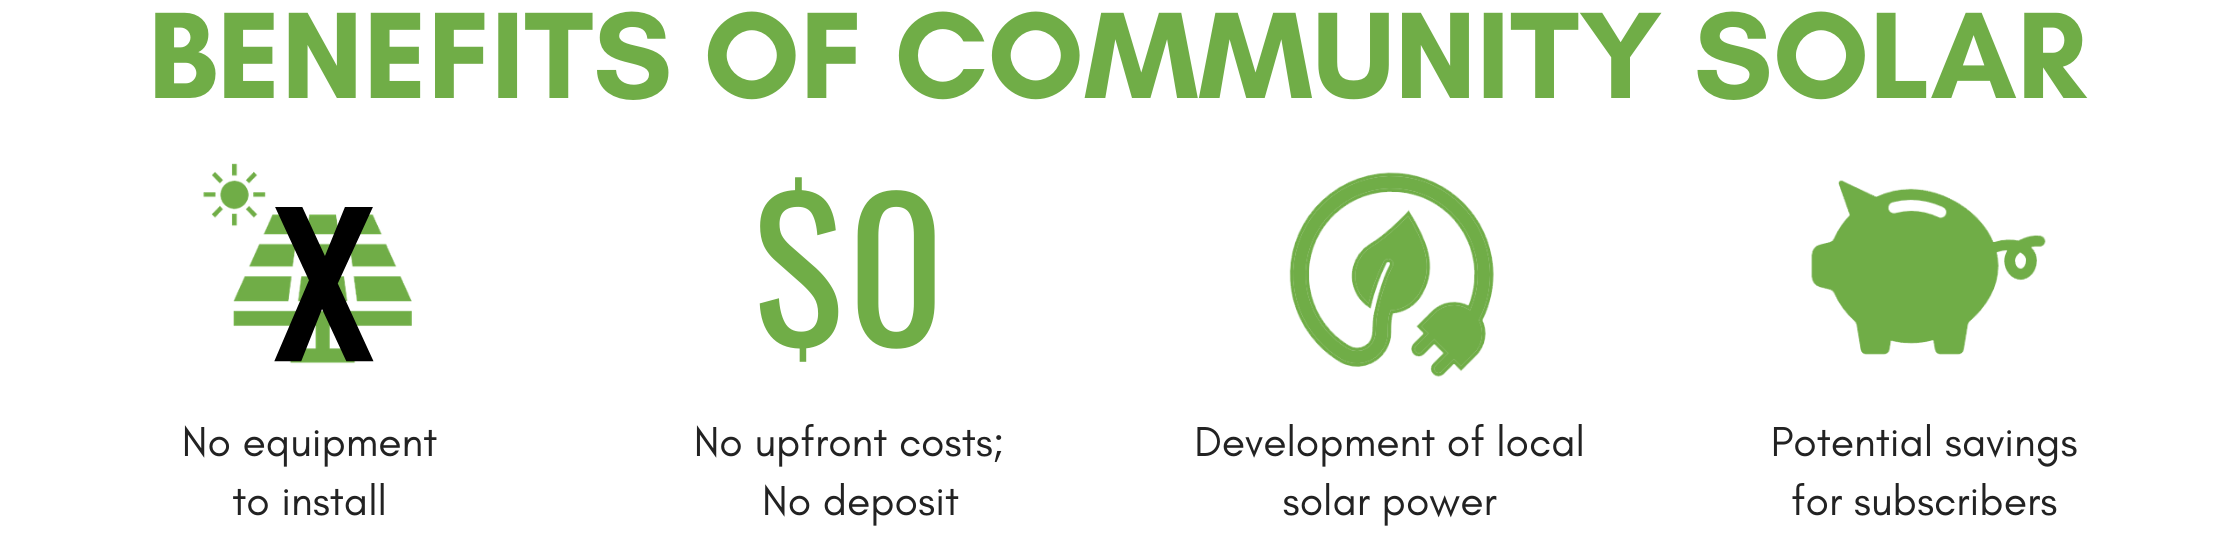 BENEFITS OF COMMUNITY SOLAR (2).png